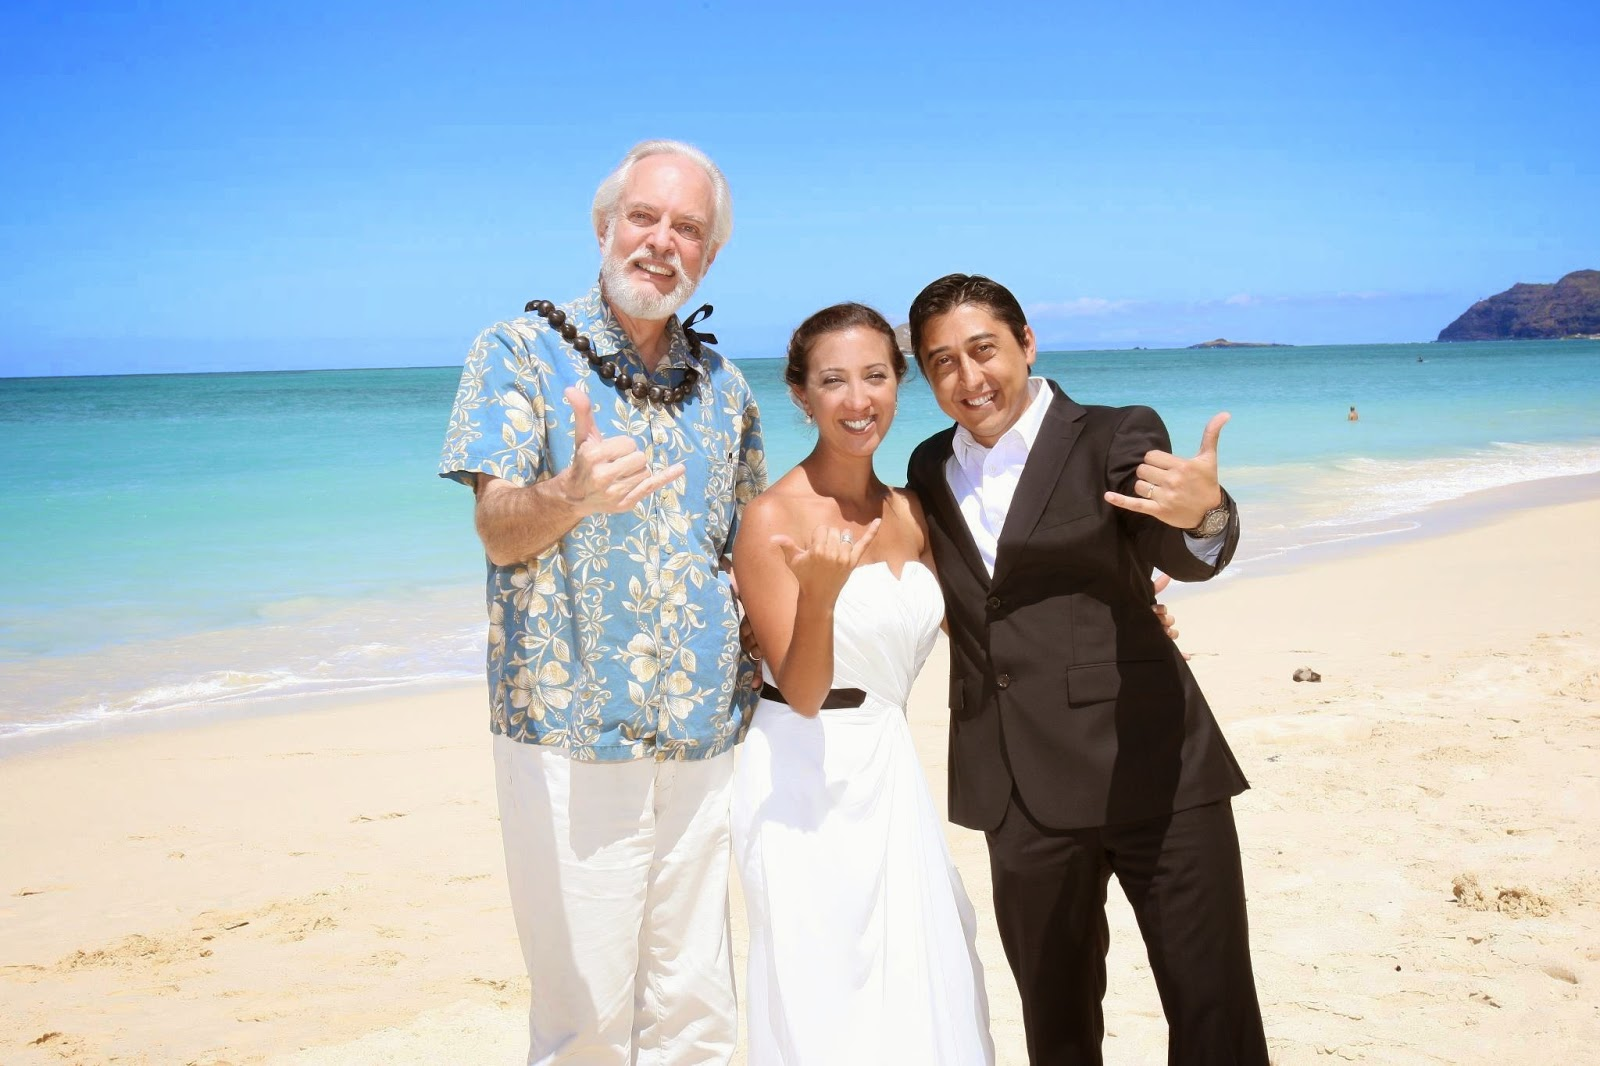 http://apps.hawaiiweddingphotos.net/Blog/?e=81571&d=05/15/2012&s=May%2015%20Waimanalo%20Wedding%20-%20Jose%20%26%20Natalia